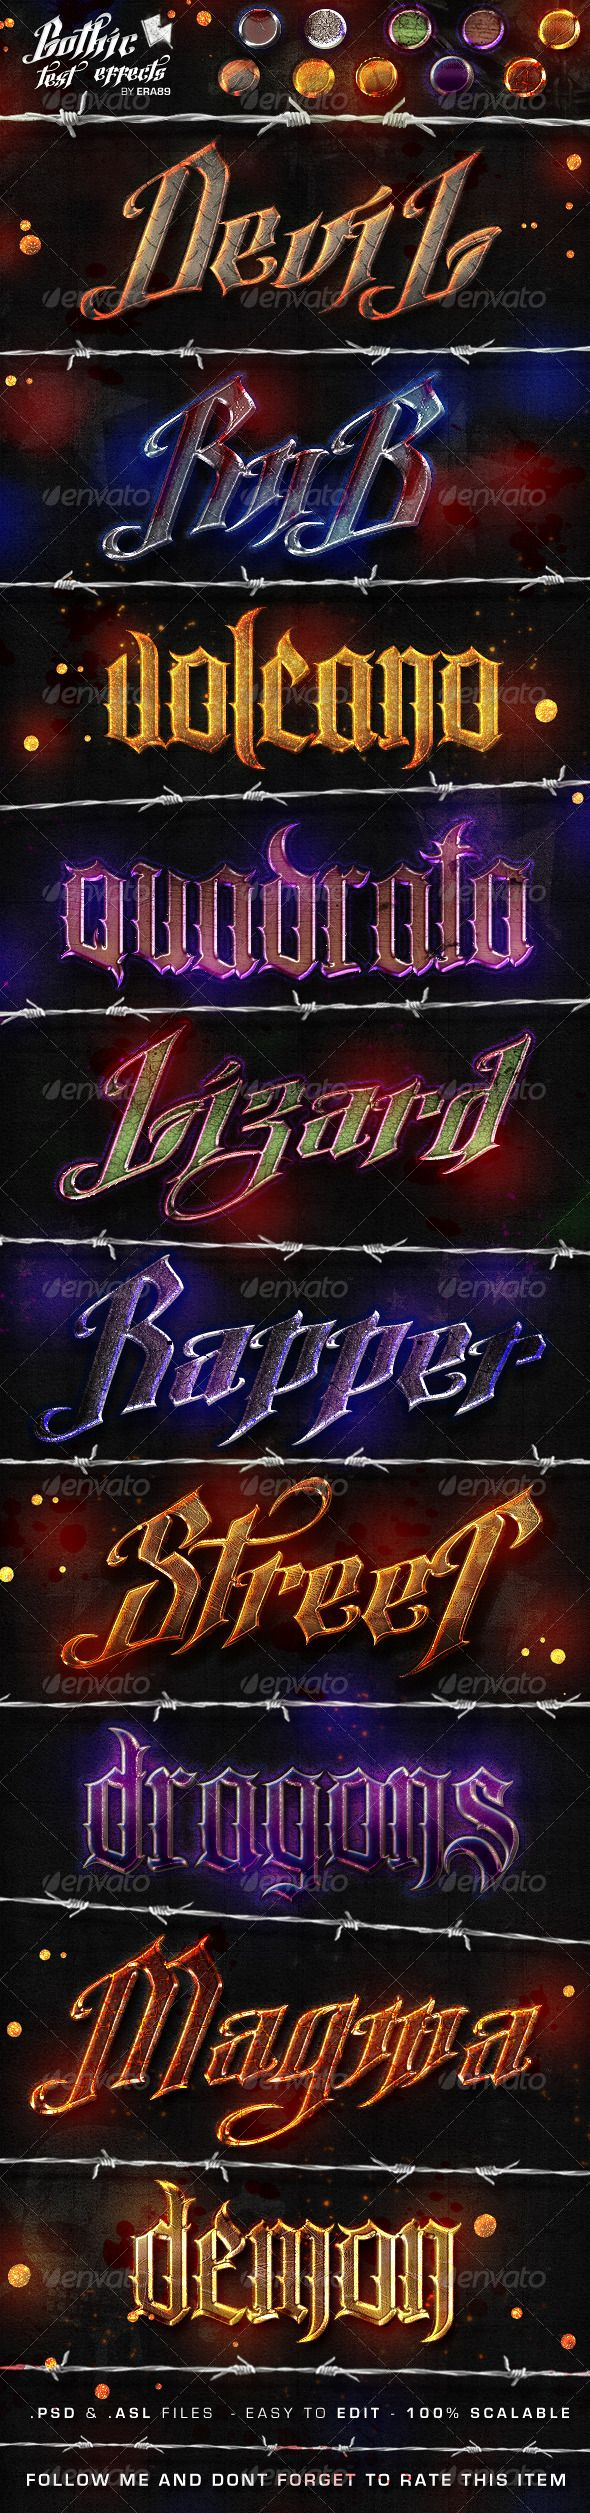 Gothic Text Effects - Photoshop Styles